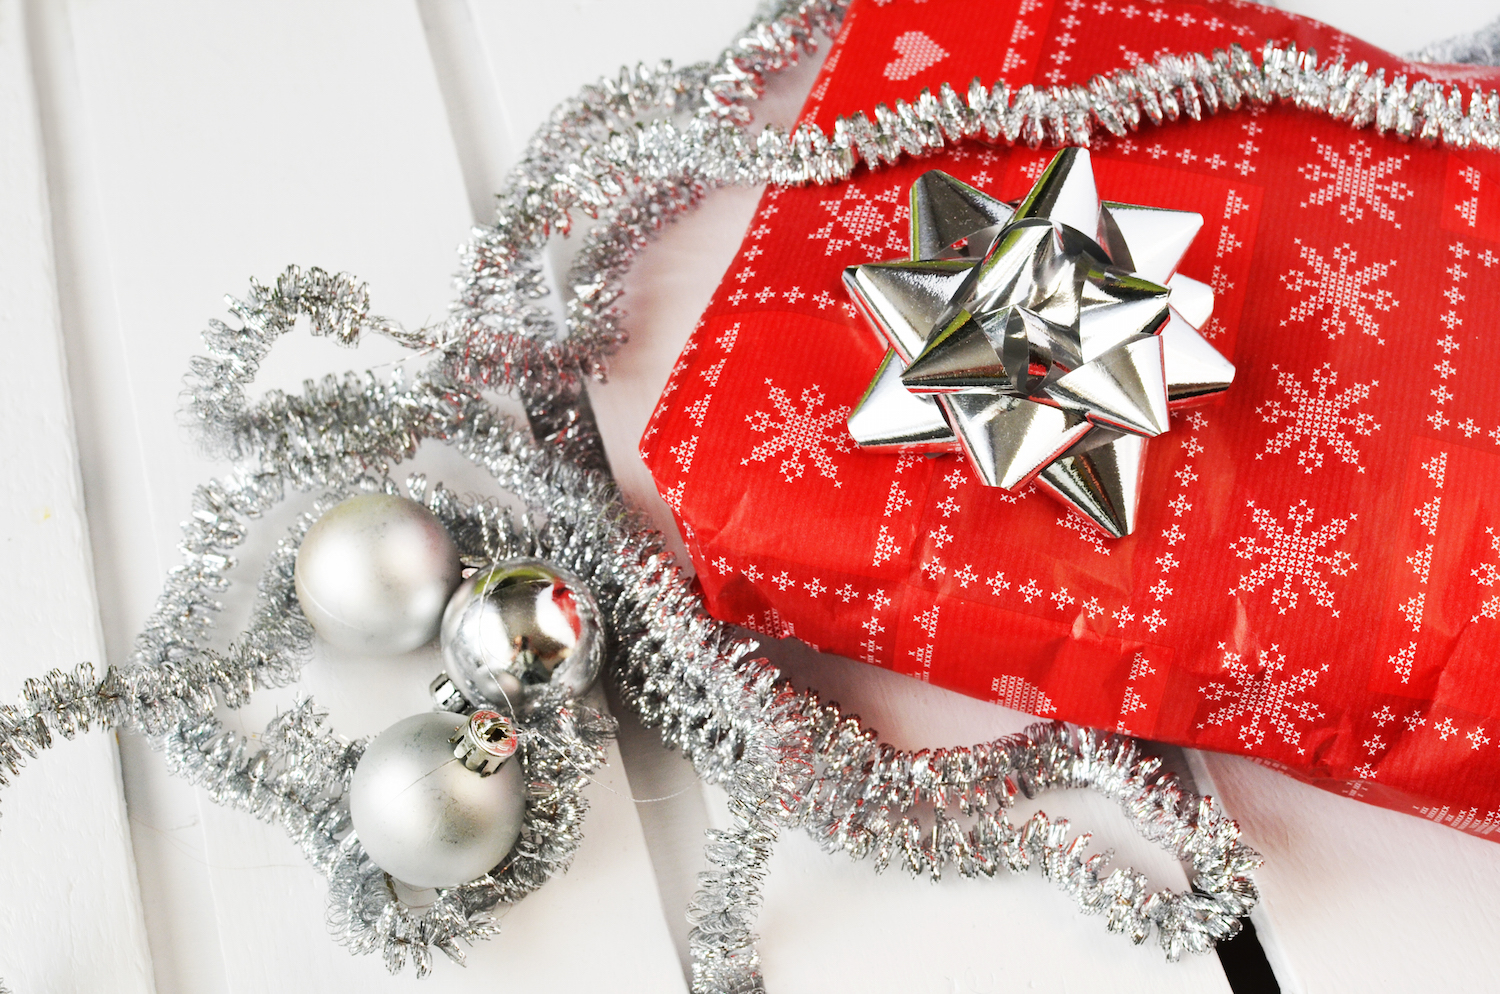 red gift wrapped present with a silver bow and tinsel holiday decorations